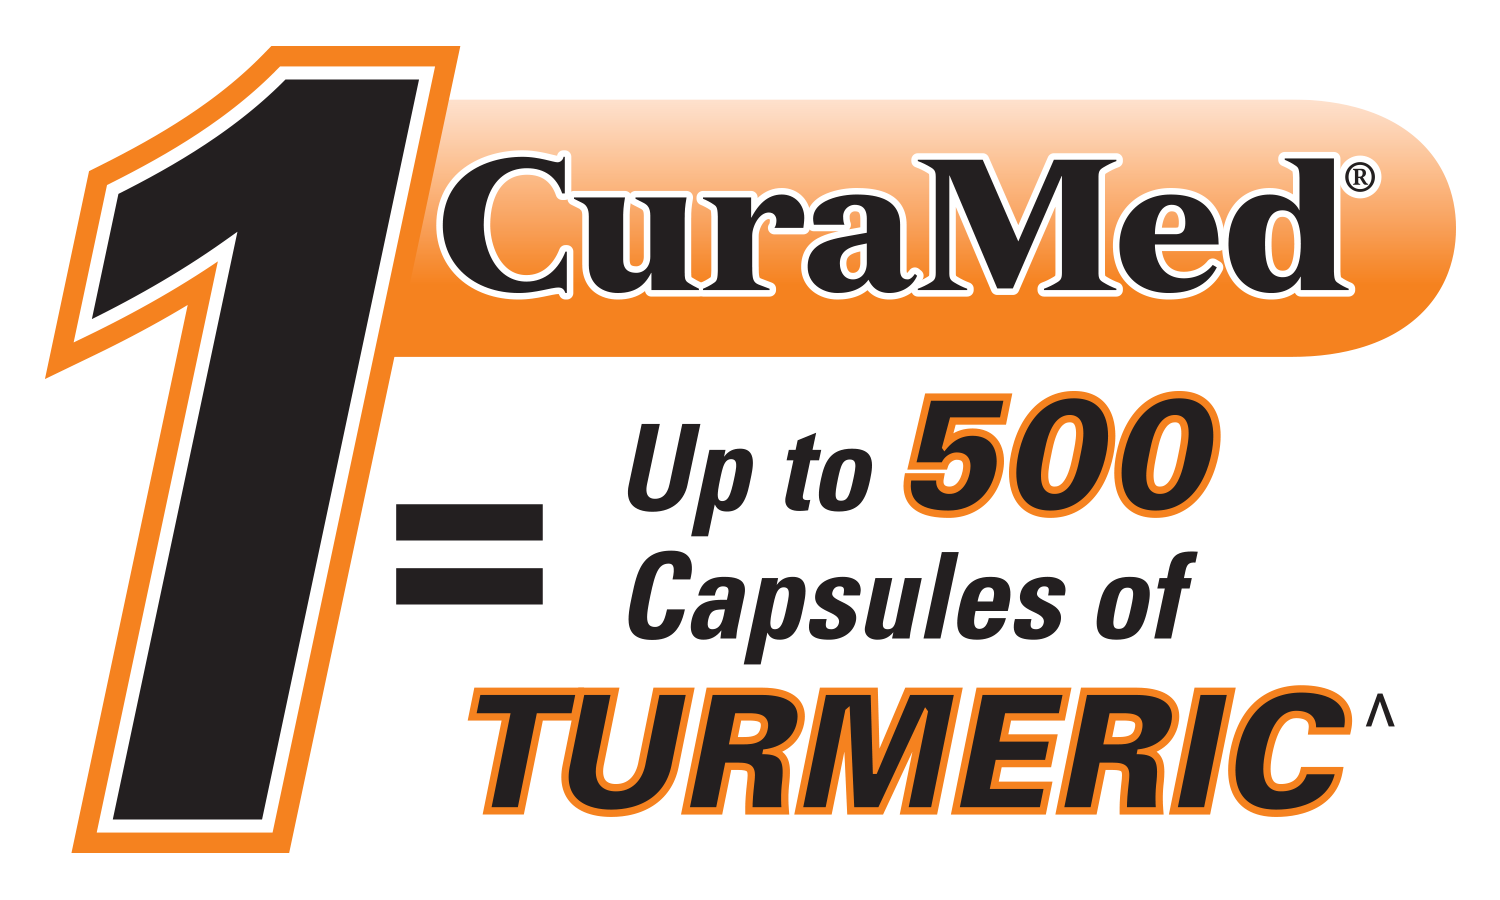 1 CuraMed Equals Up to 500 Capsules of Turmeric Graphic